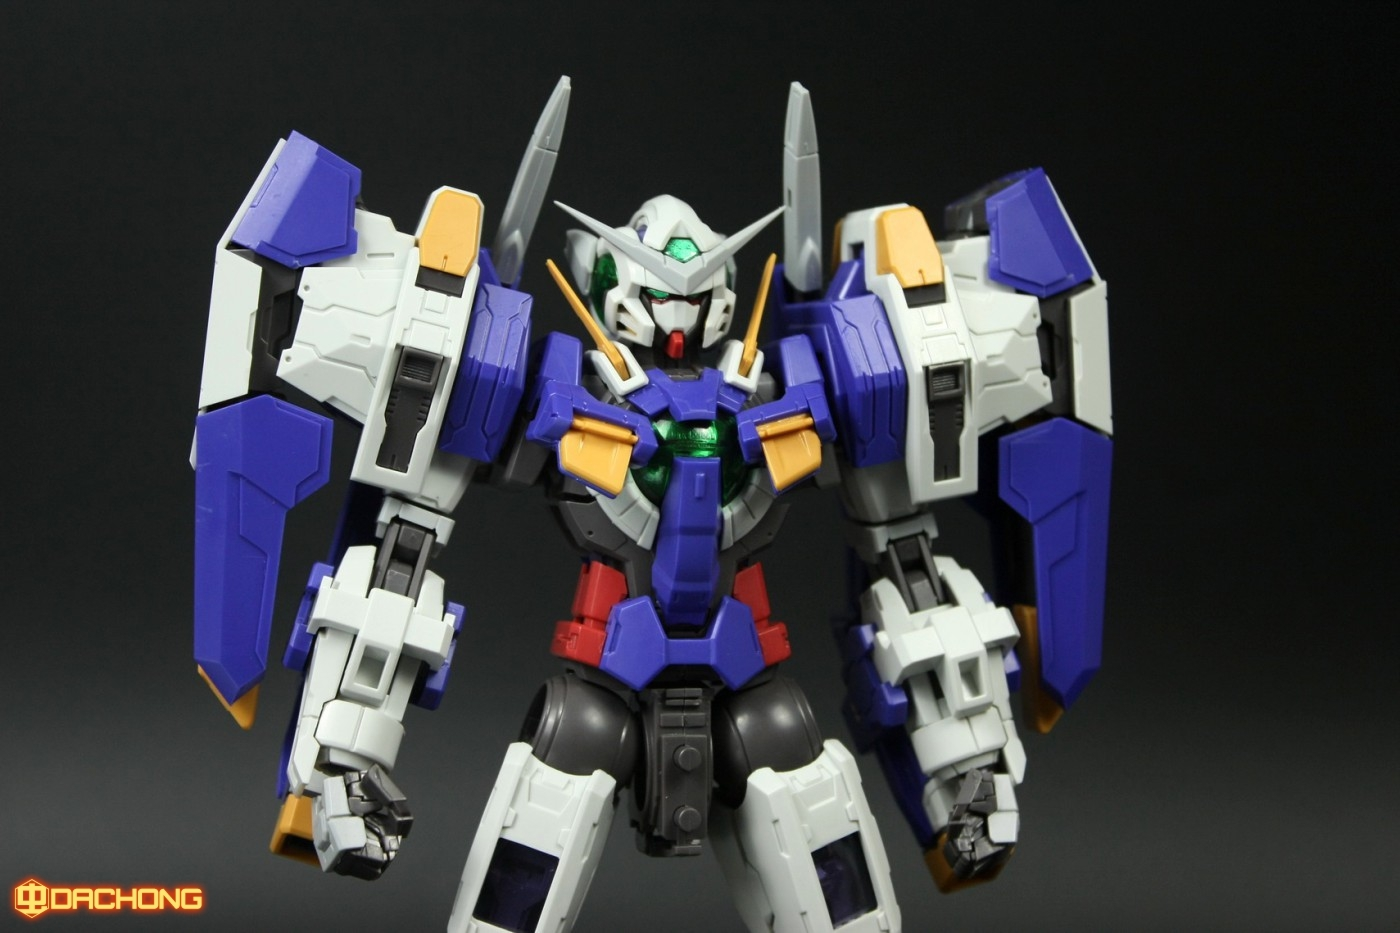 S254_MG_exia_HS_review_inask_053.jpg